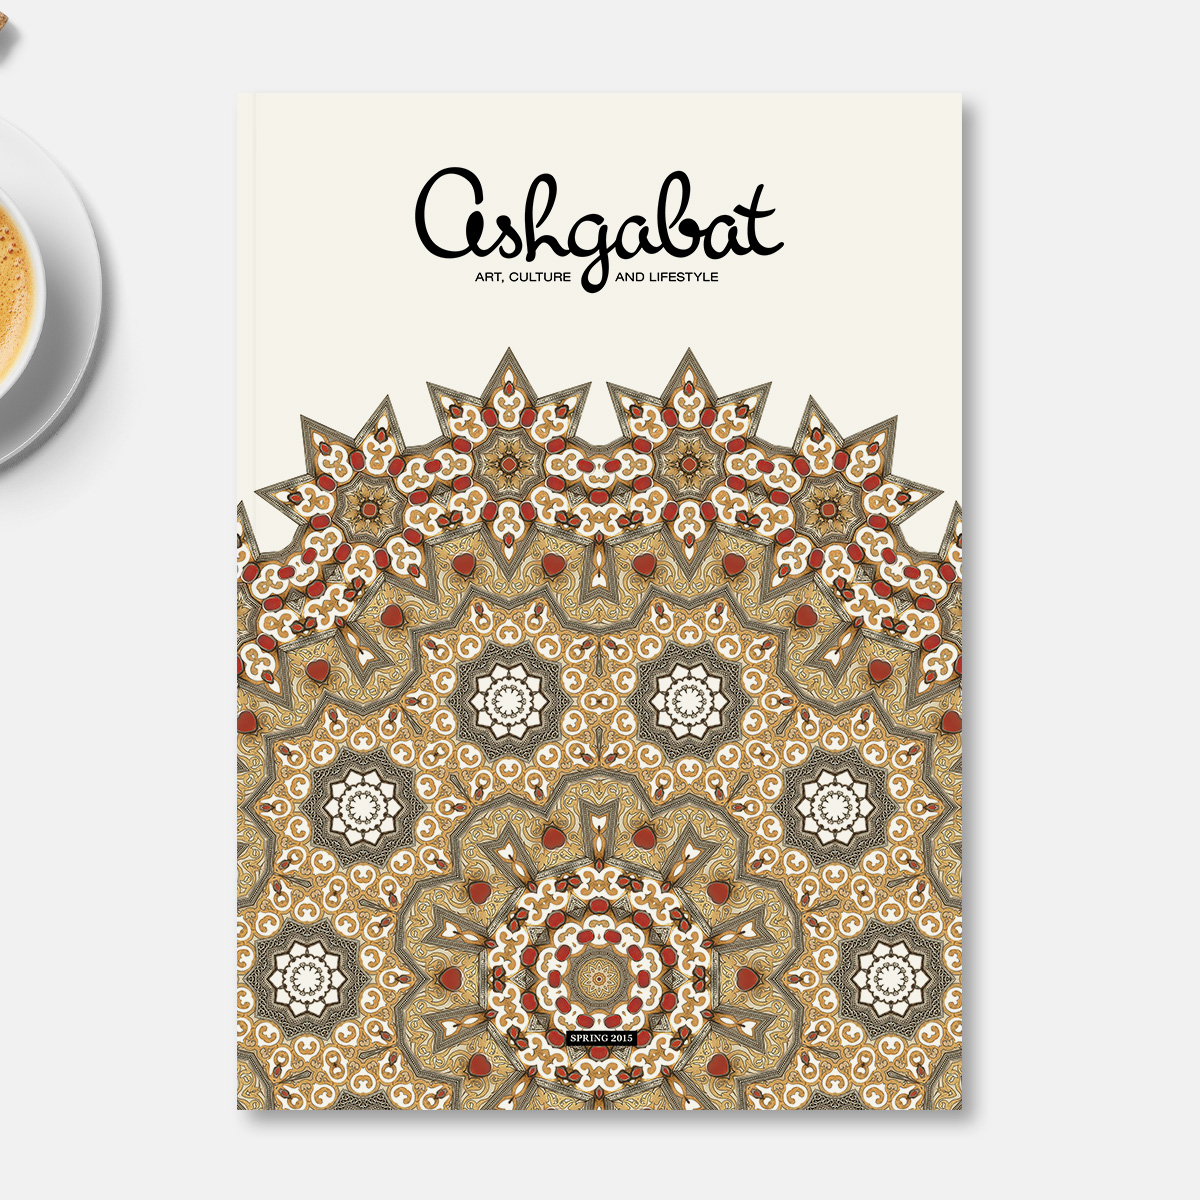 Ashgabat. Design and layout of a good-life magazine